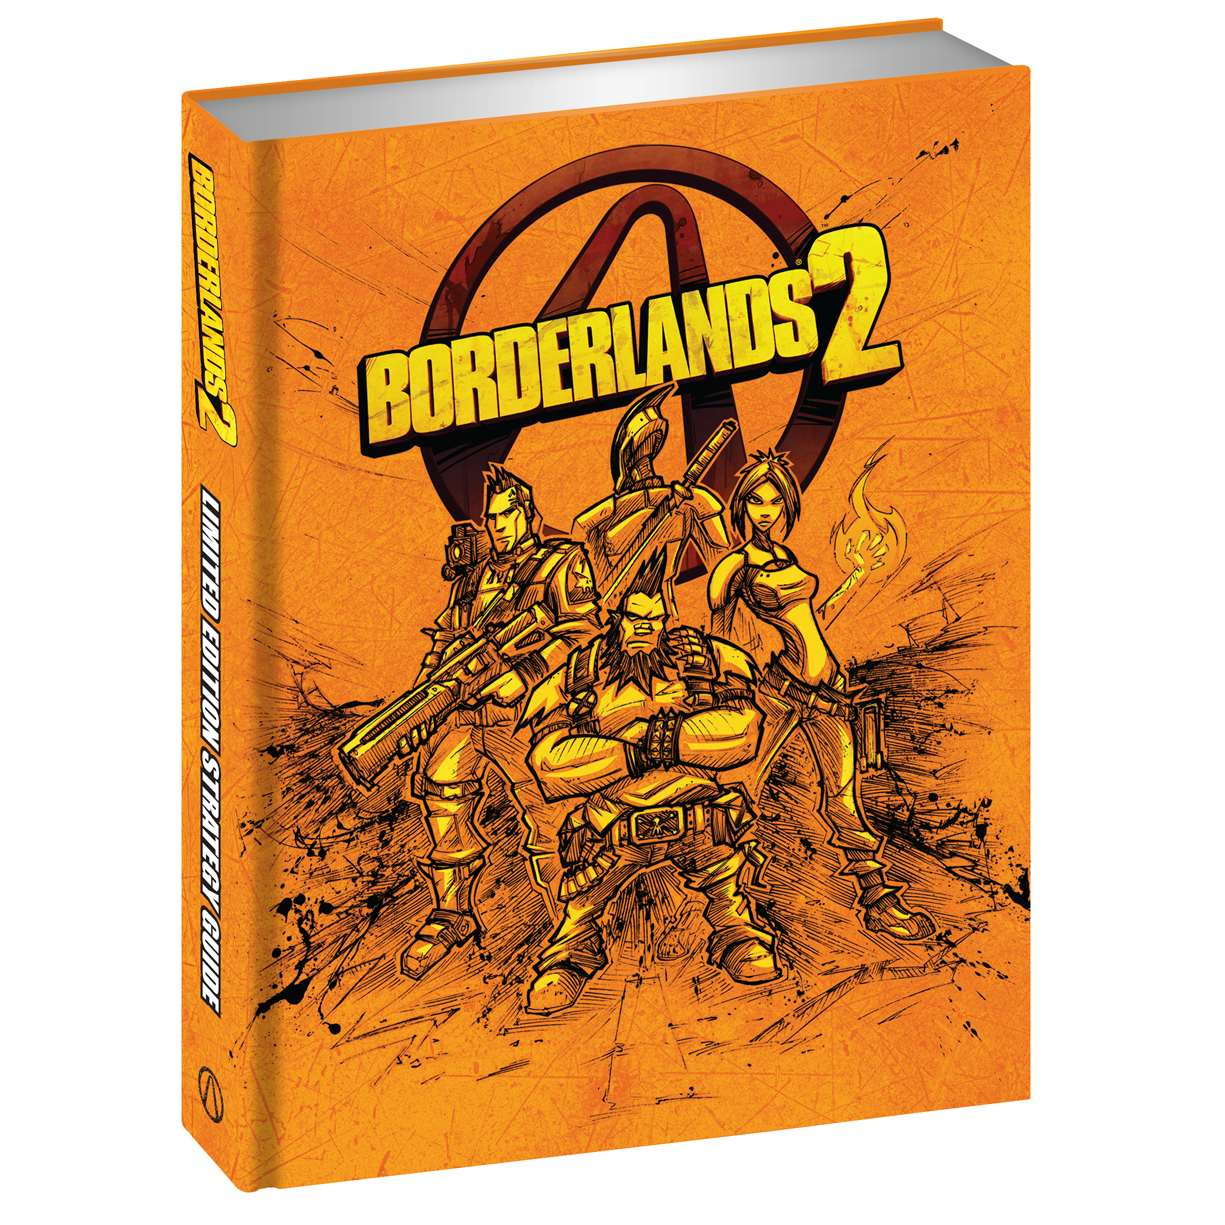 Borderlands official strategy guide.